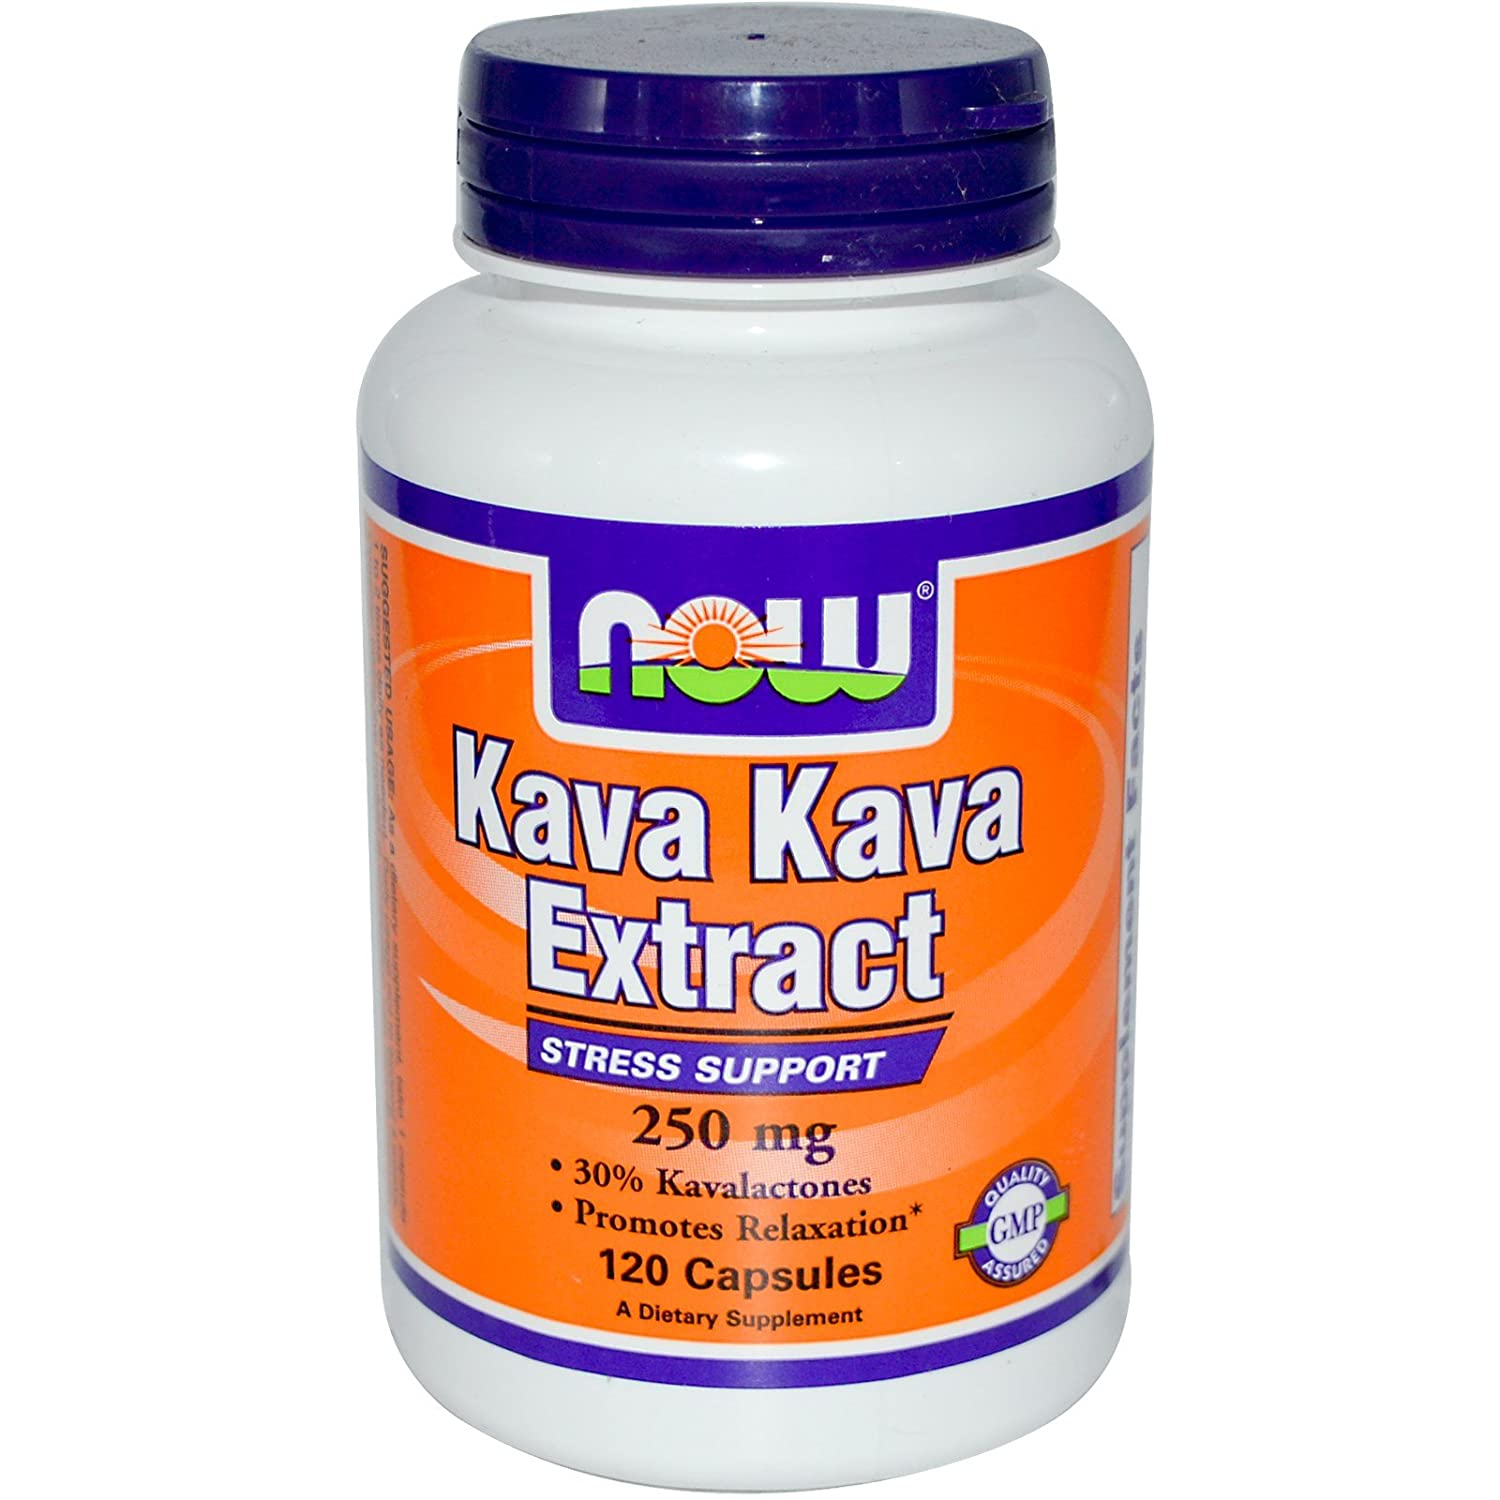 Now Foods, Kava Kava Extract, 250 mg, 120 Capsules - 2PC sleeping pills or otc sleep aids Sleeping pills or OTC sleep aids – risks and side effects 71Mh9hl 0RL